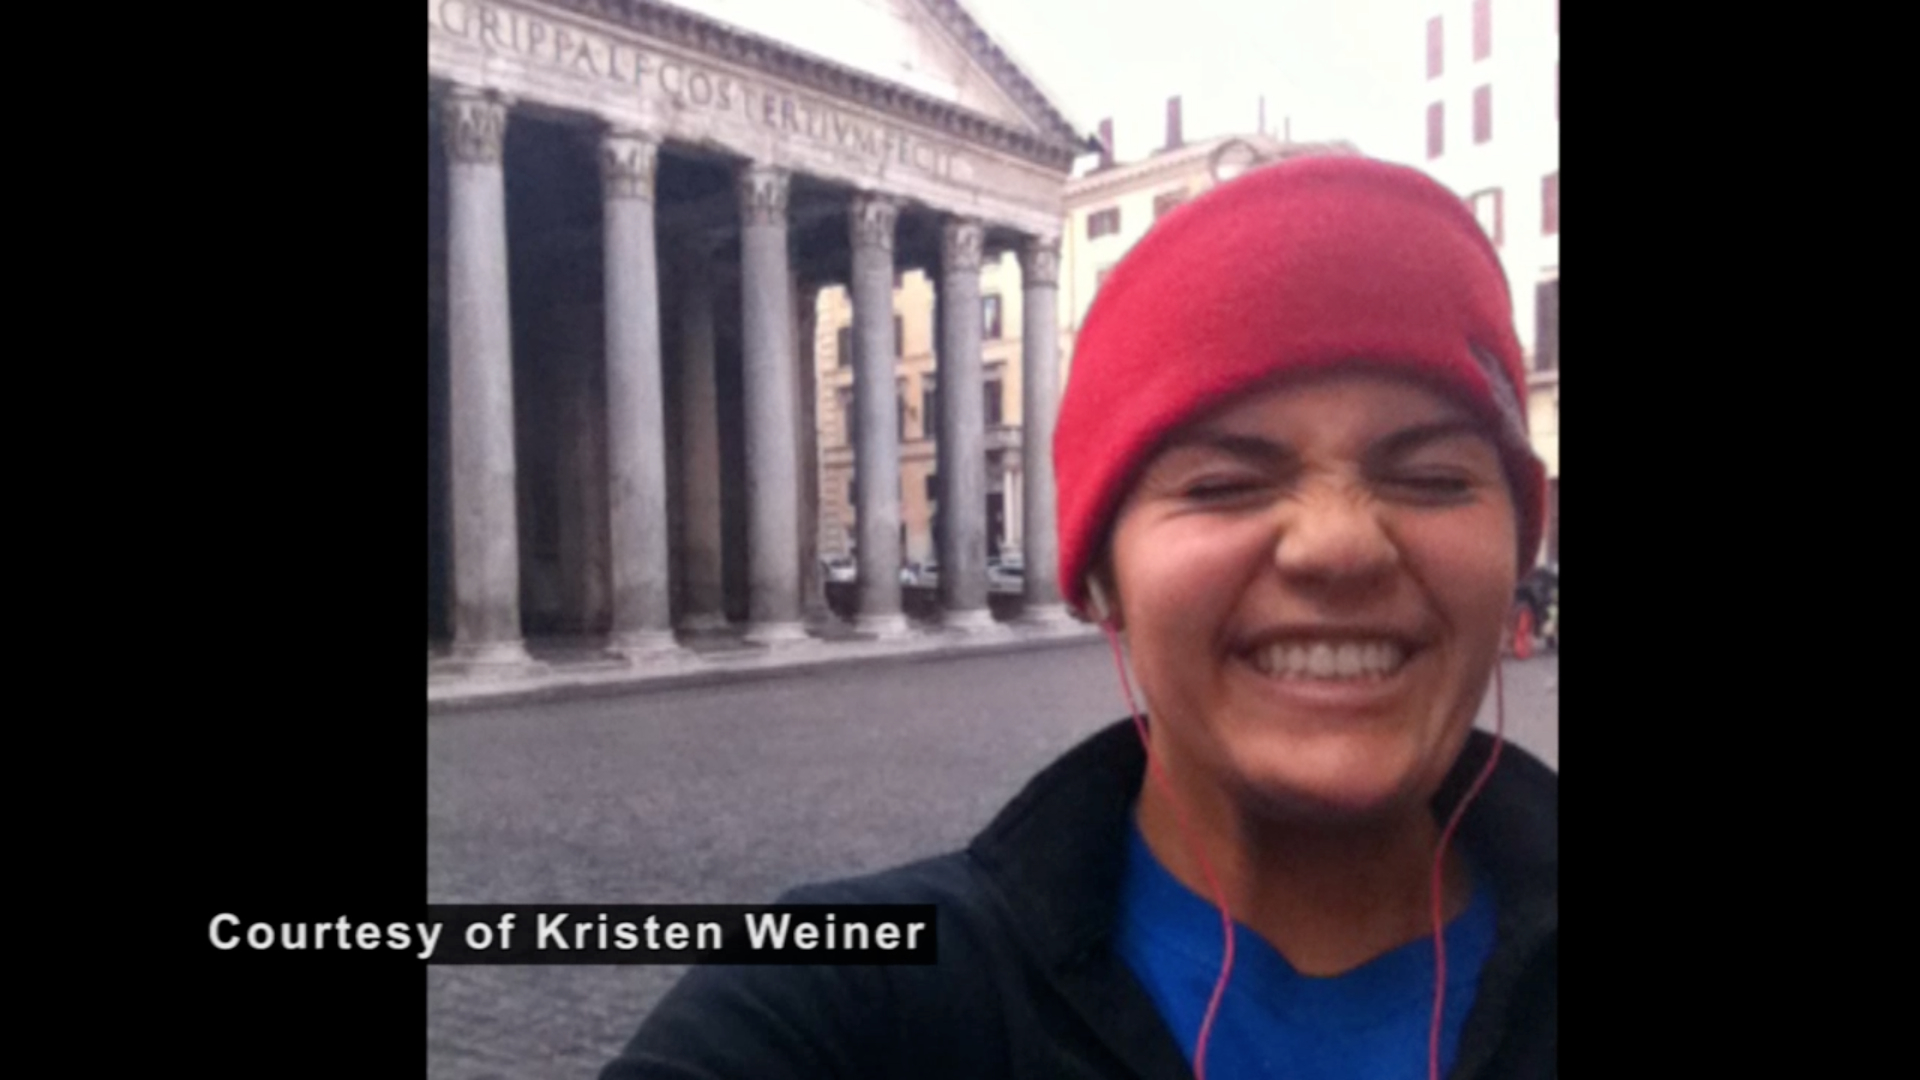 Boston Marathon: Kristen Weiner